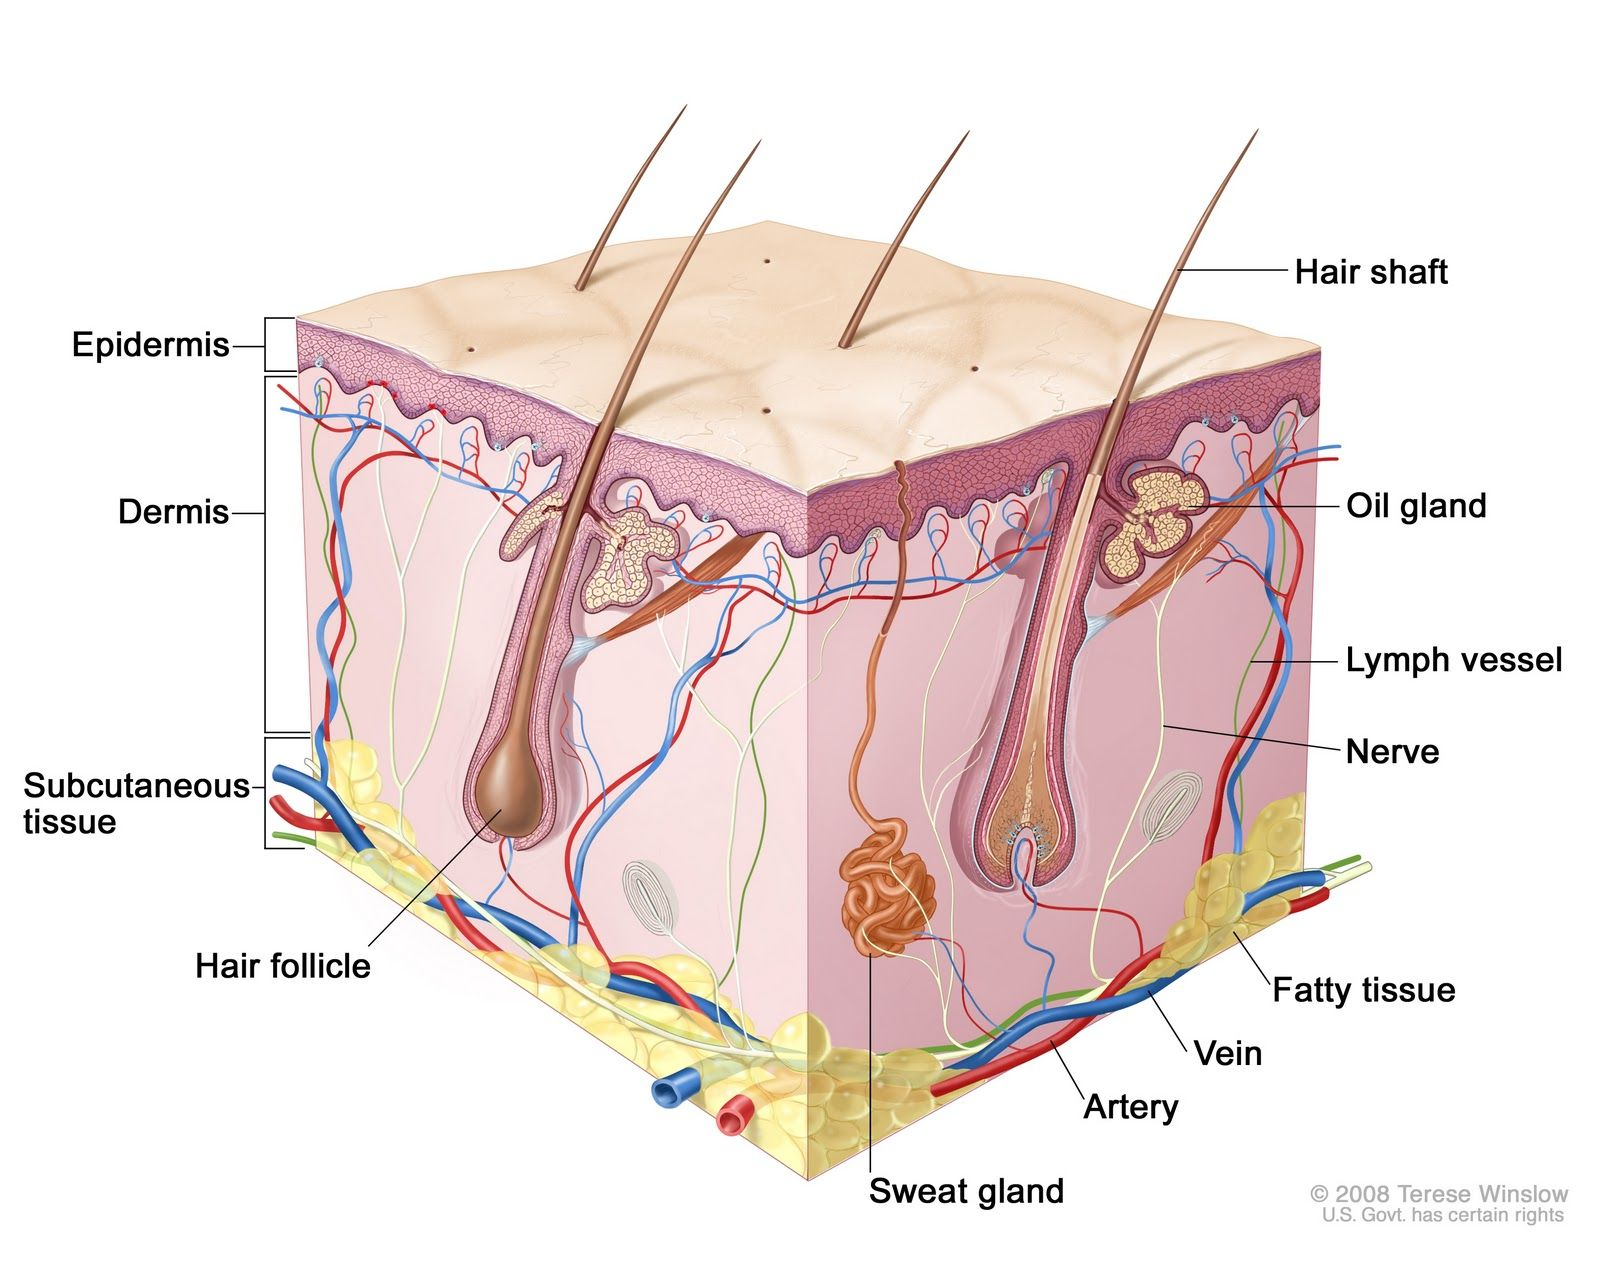 Et S Look At Some Skin Science The Skin Is Composed Of Many Layers The Outermost Layer Is Called The Skin Anatomy Subcutaneous Tissue Cosmeceutical Skin Care